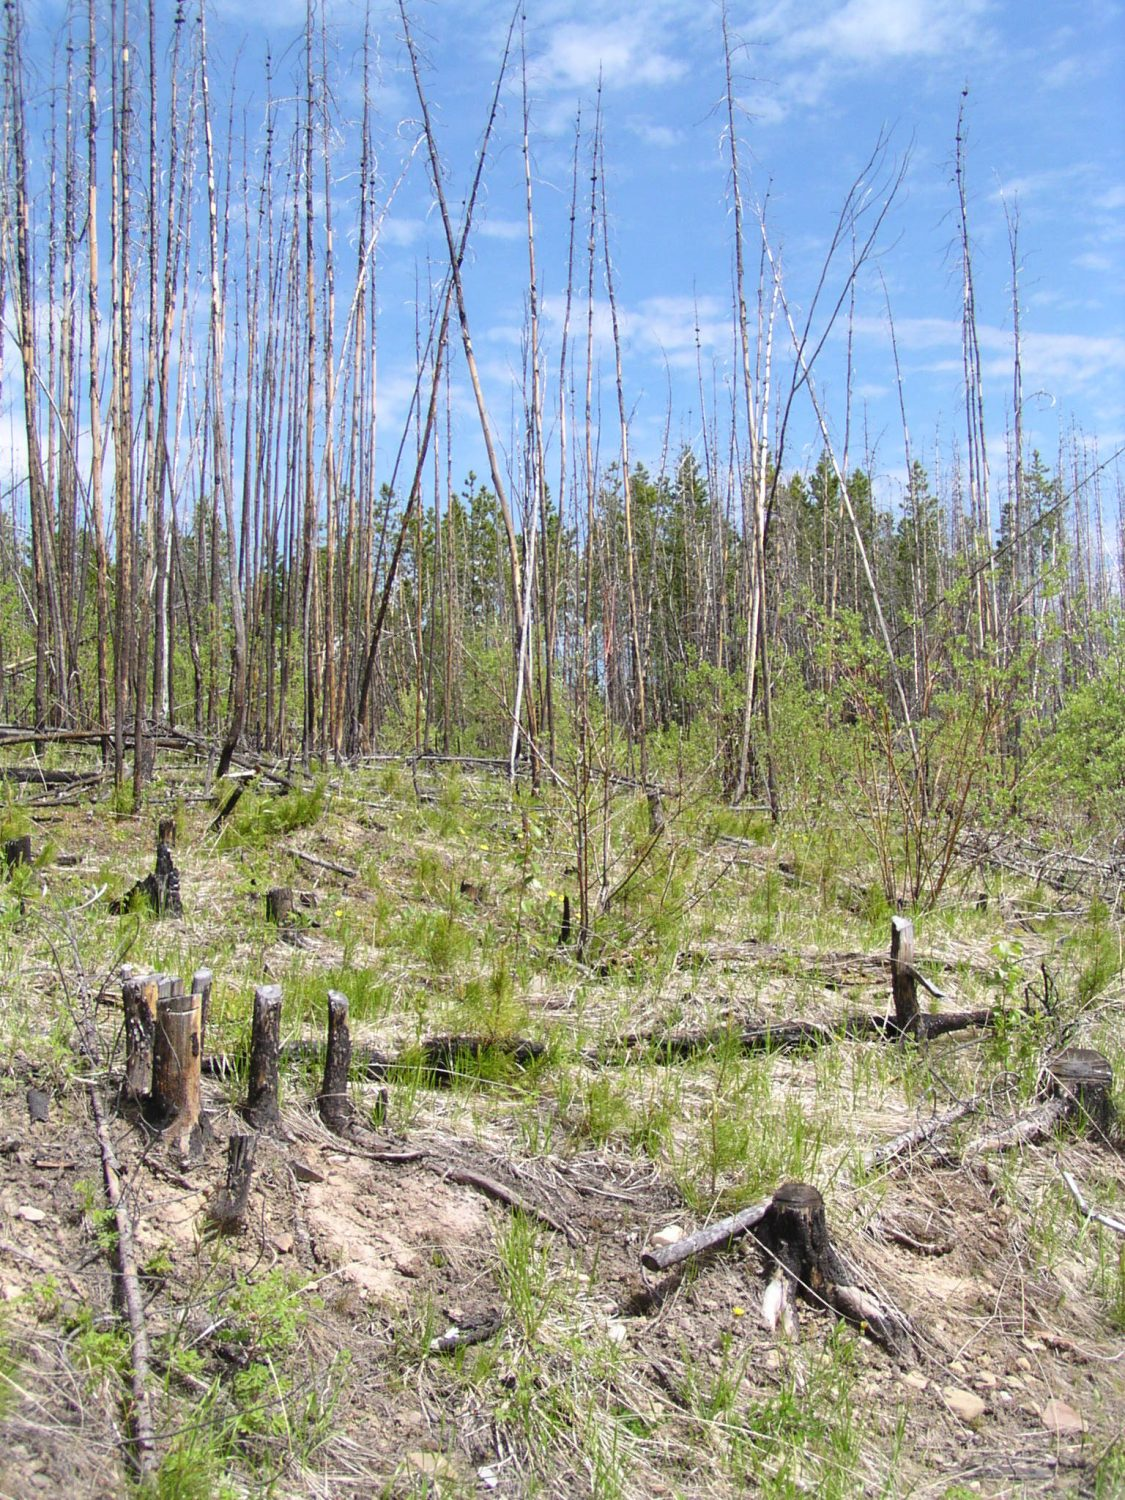 A burned stand with cut stumps in the foreground